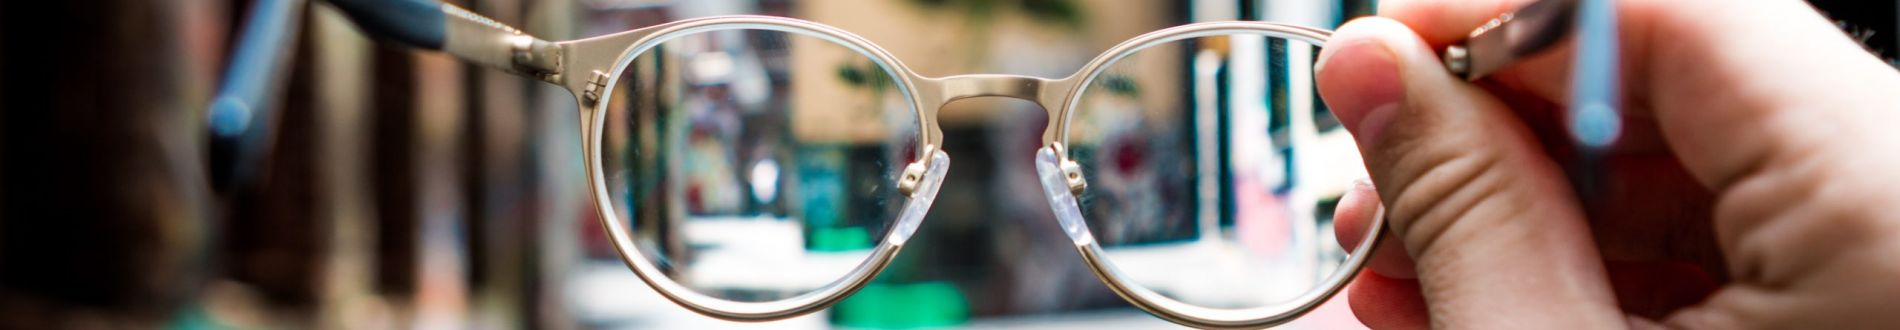 Eye glasses that help see a city street